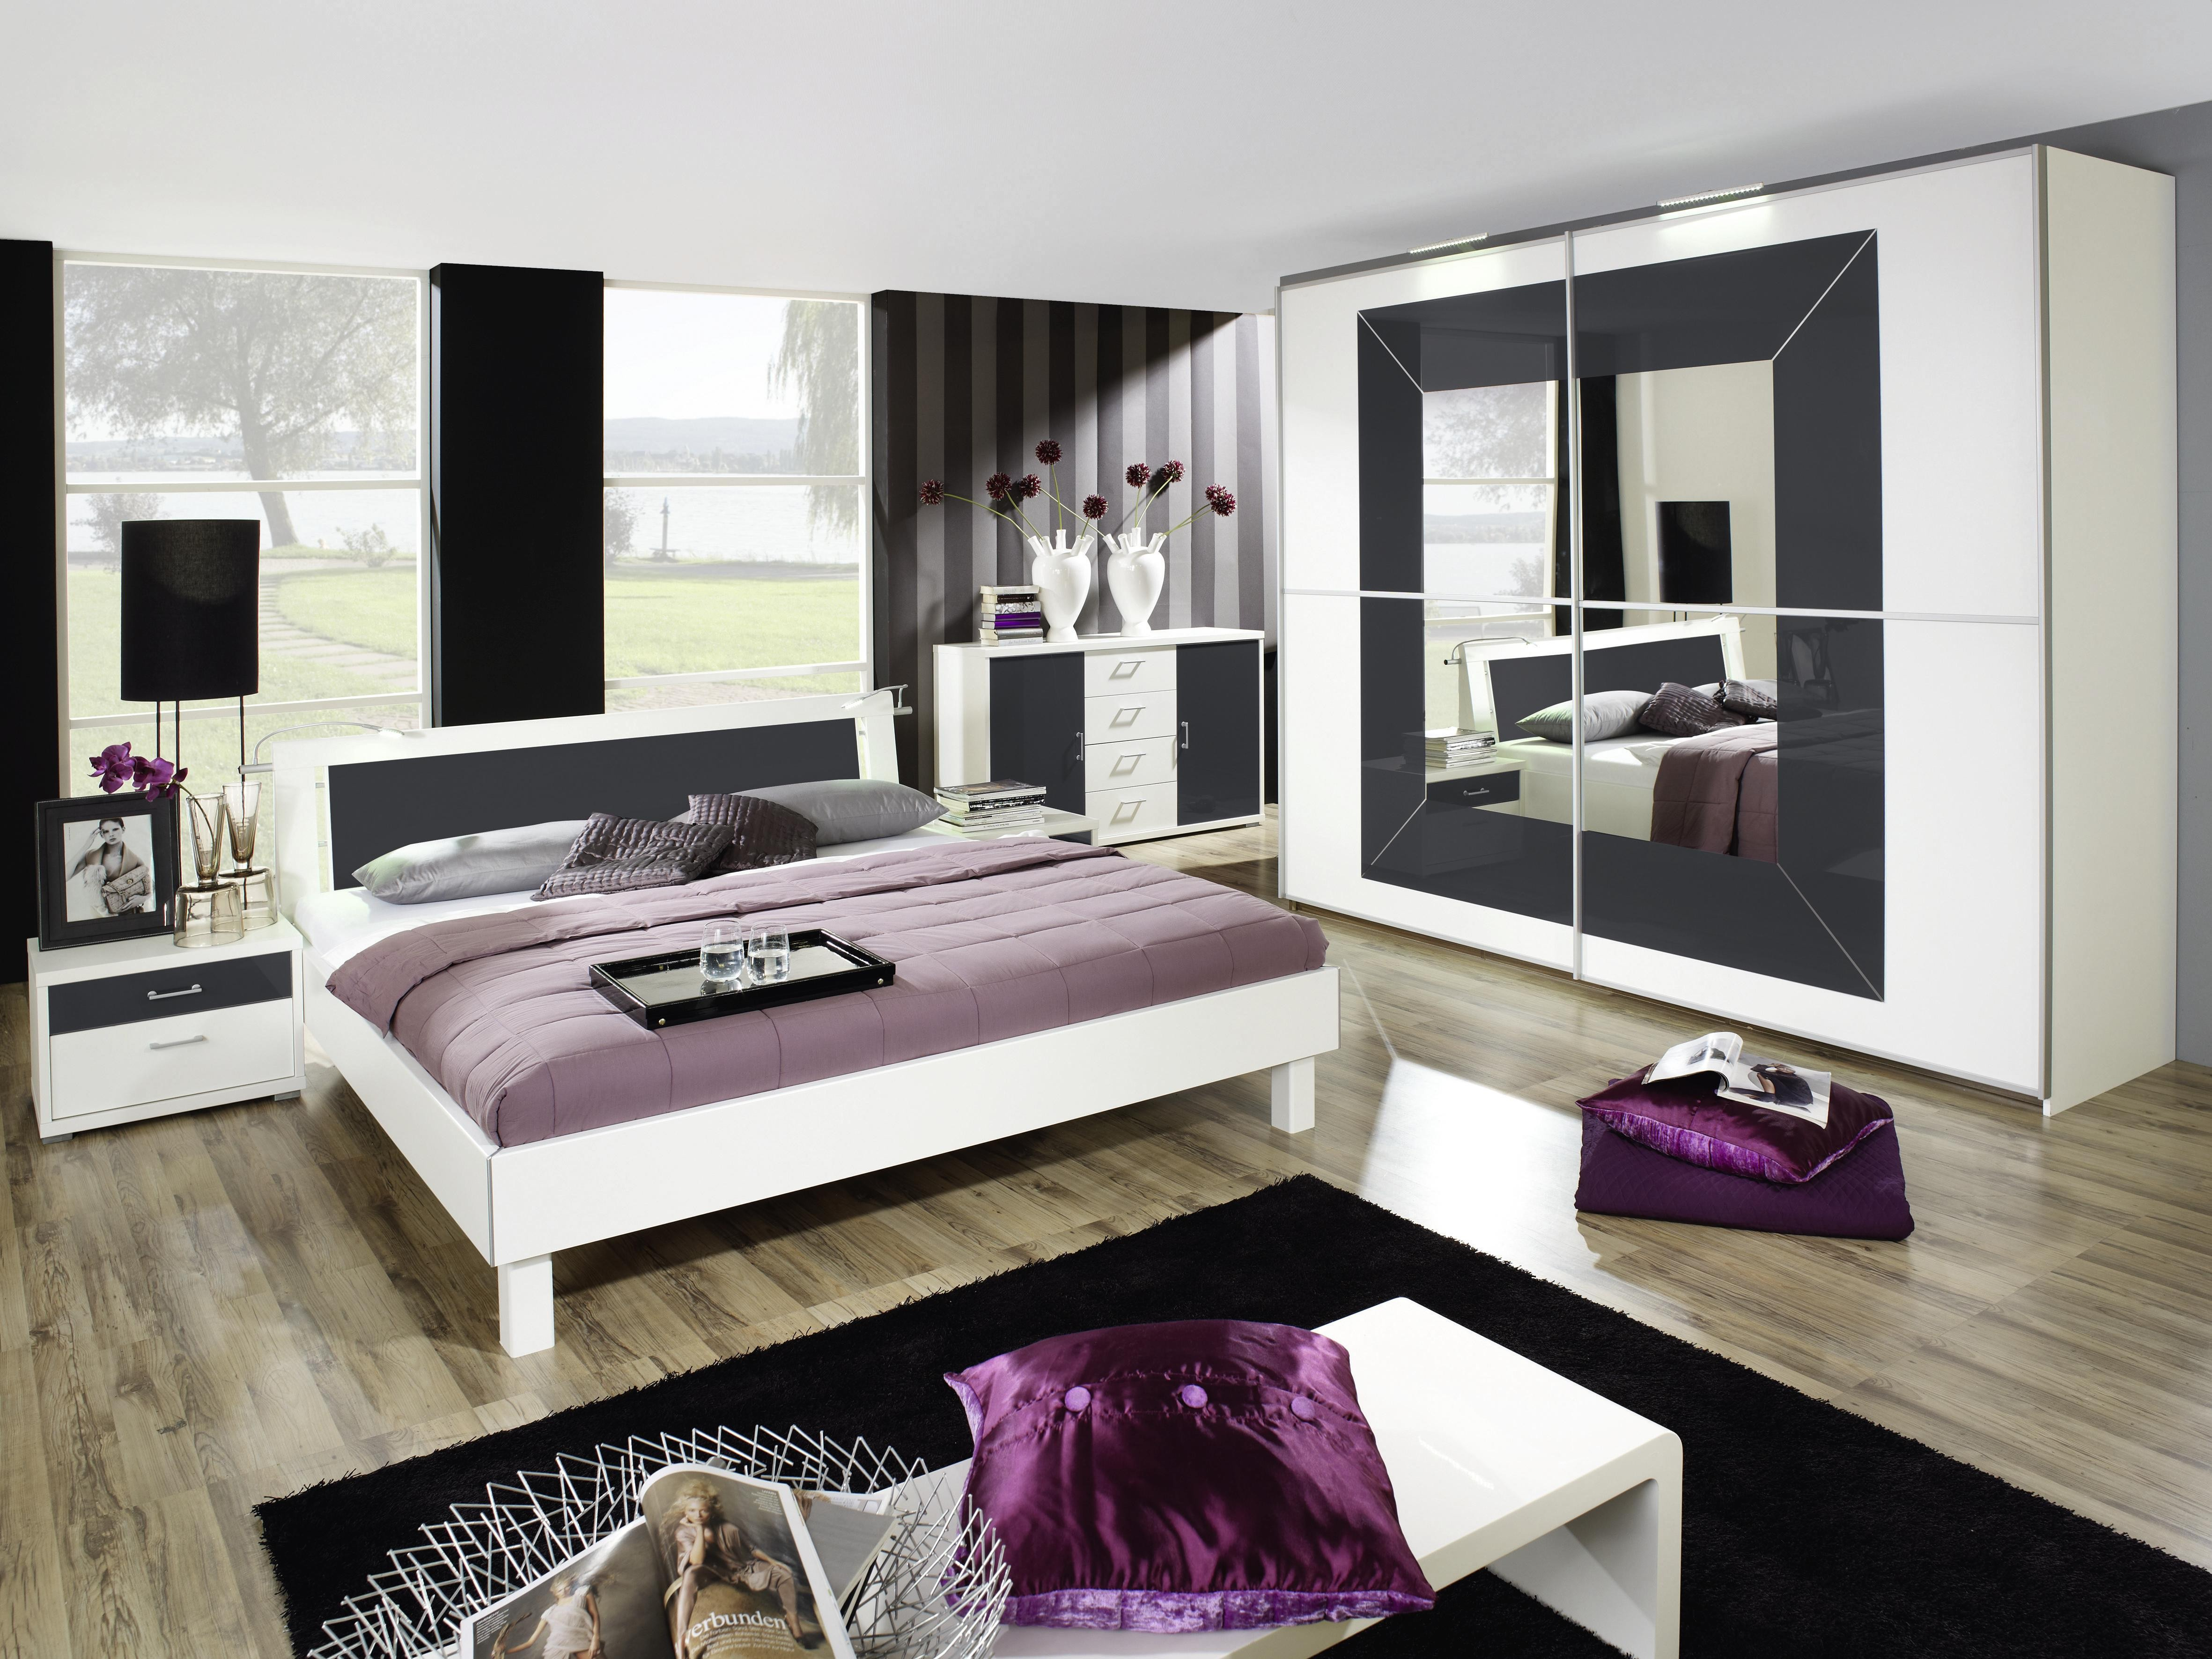 deco chambre id e d co chambre adulte. Black Bedroom Furniture Sets. Home Design Ideas